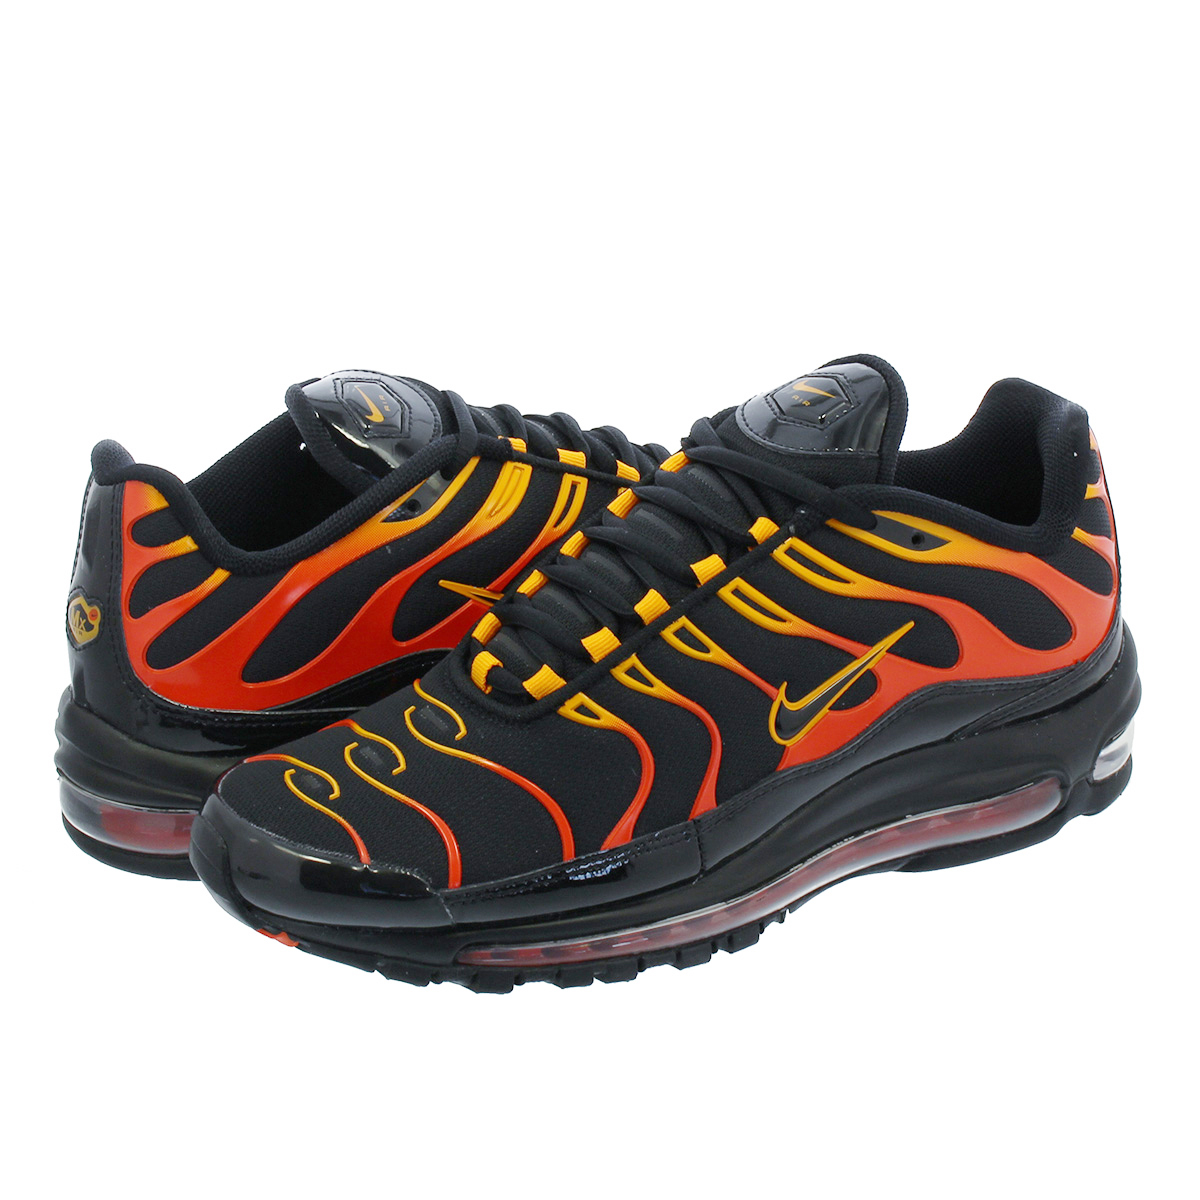 official photos 1bc7c 024e3 NIKE AIR MAX 97 PLUS Kie Ney AMAX 97 plus BLACK/ENGINE 1 /SHOCK ORANGE  ah8144-002